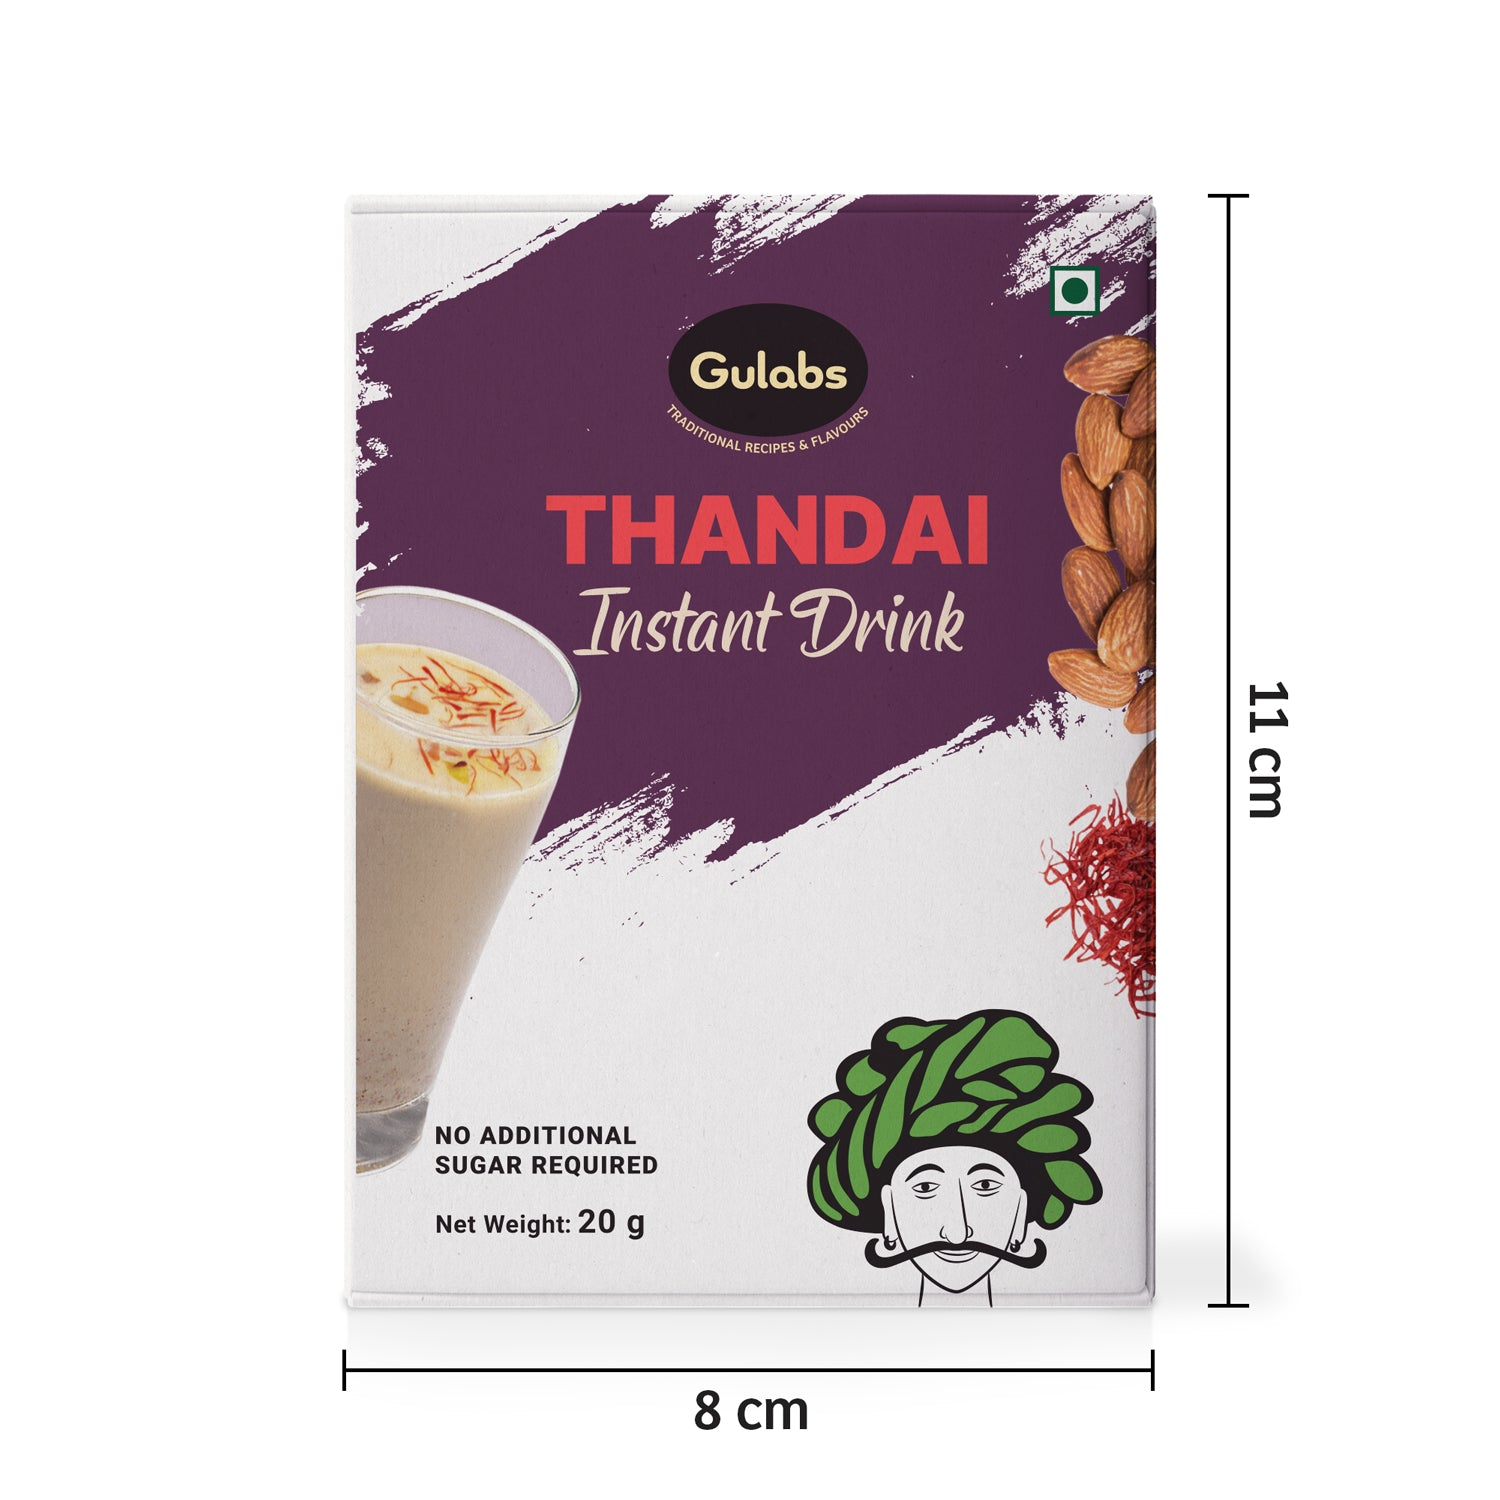 Thandai Instant drink pack front image with measurements